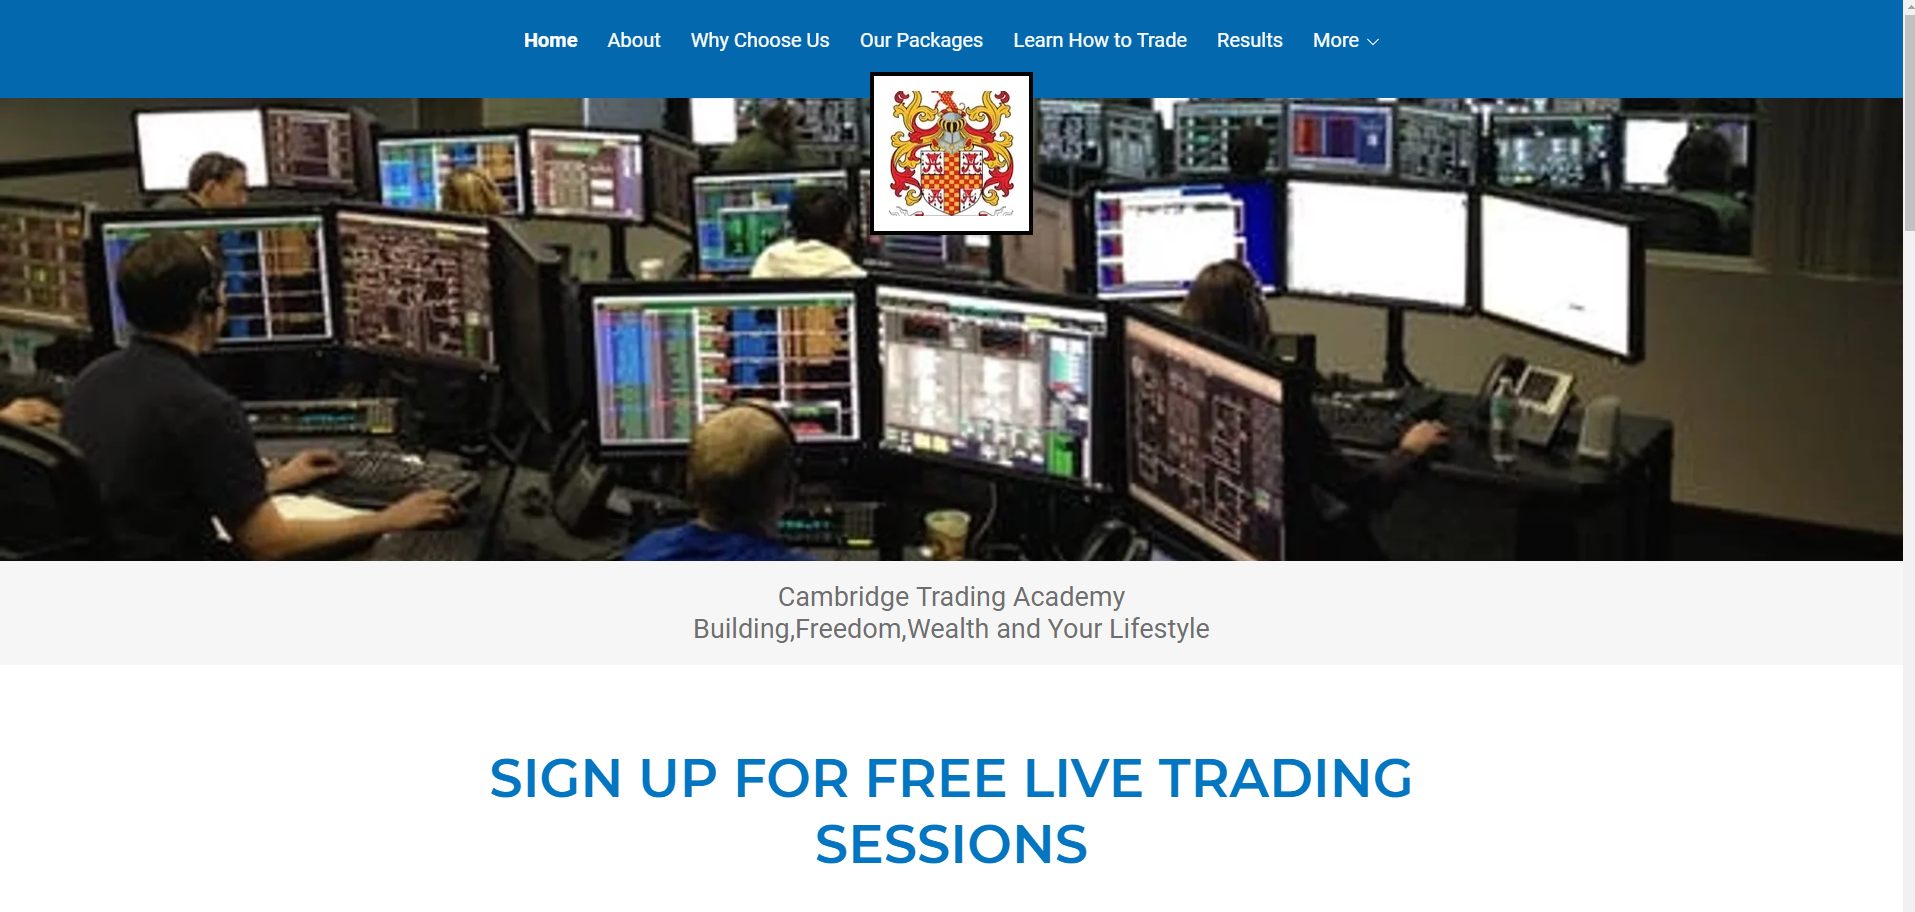 cambridge trading academy new x pro software made history in the